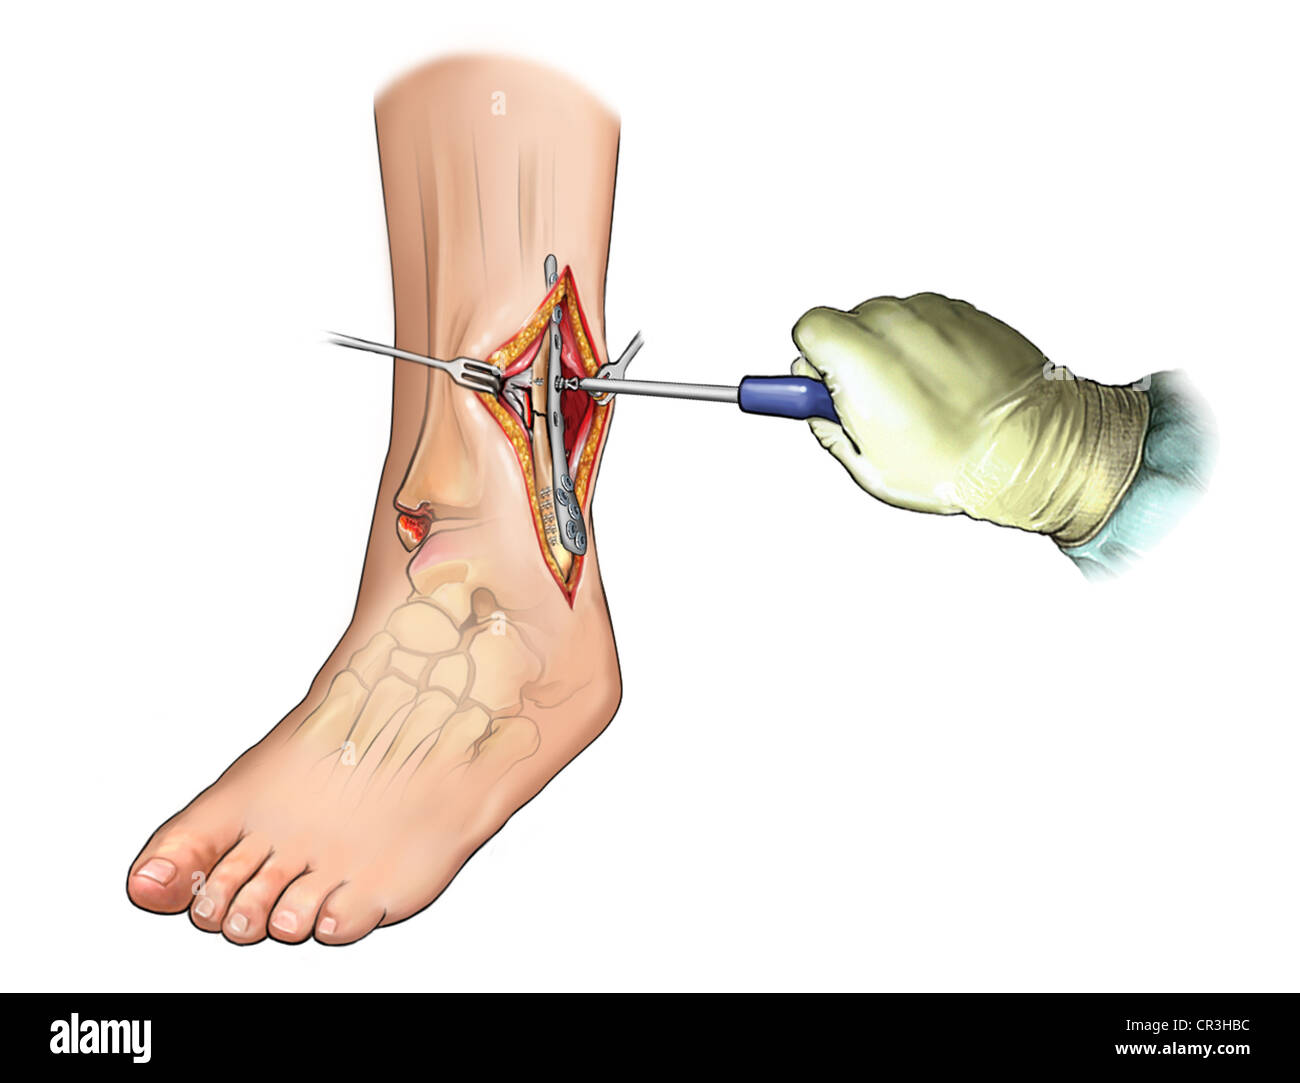 Fibular Fracture Fixation with Plate and Screws - Stock Image